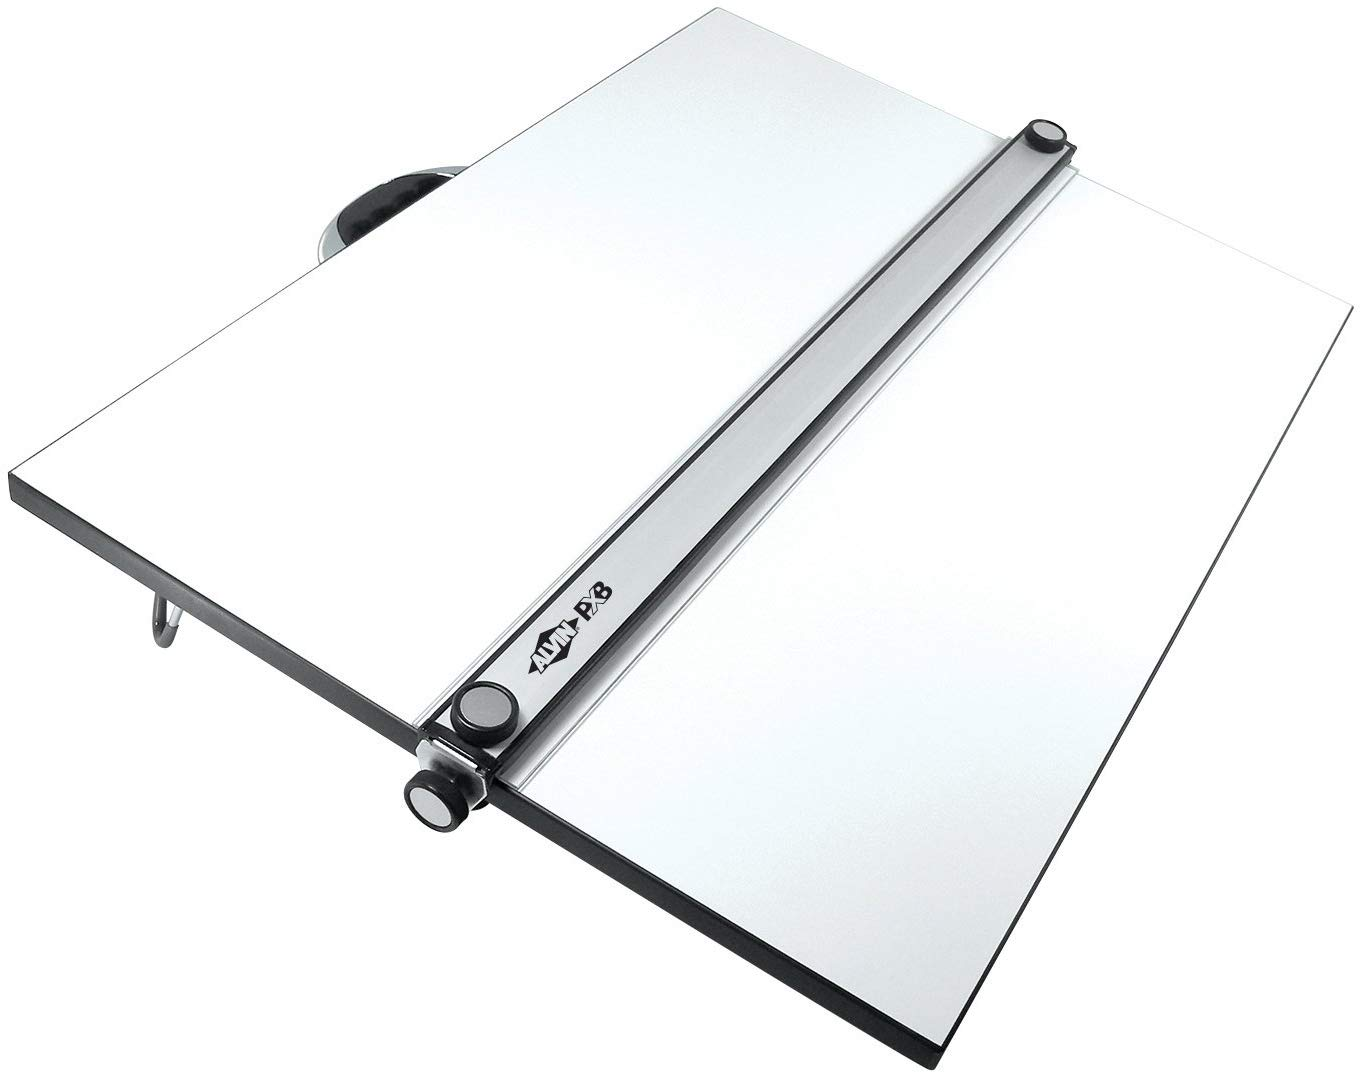 Alvin Portable Parallel Straightedge Board   10 Must Have Drawing Board for Architects